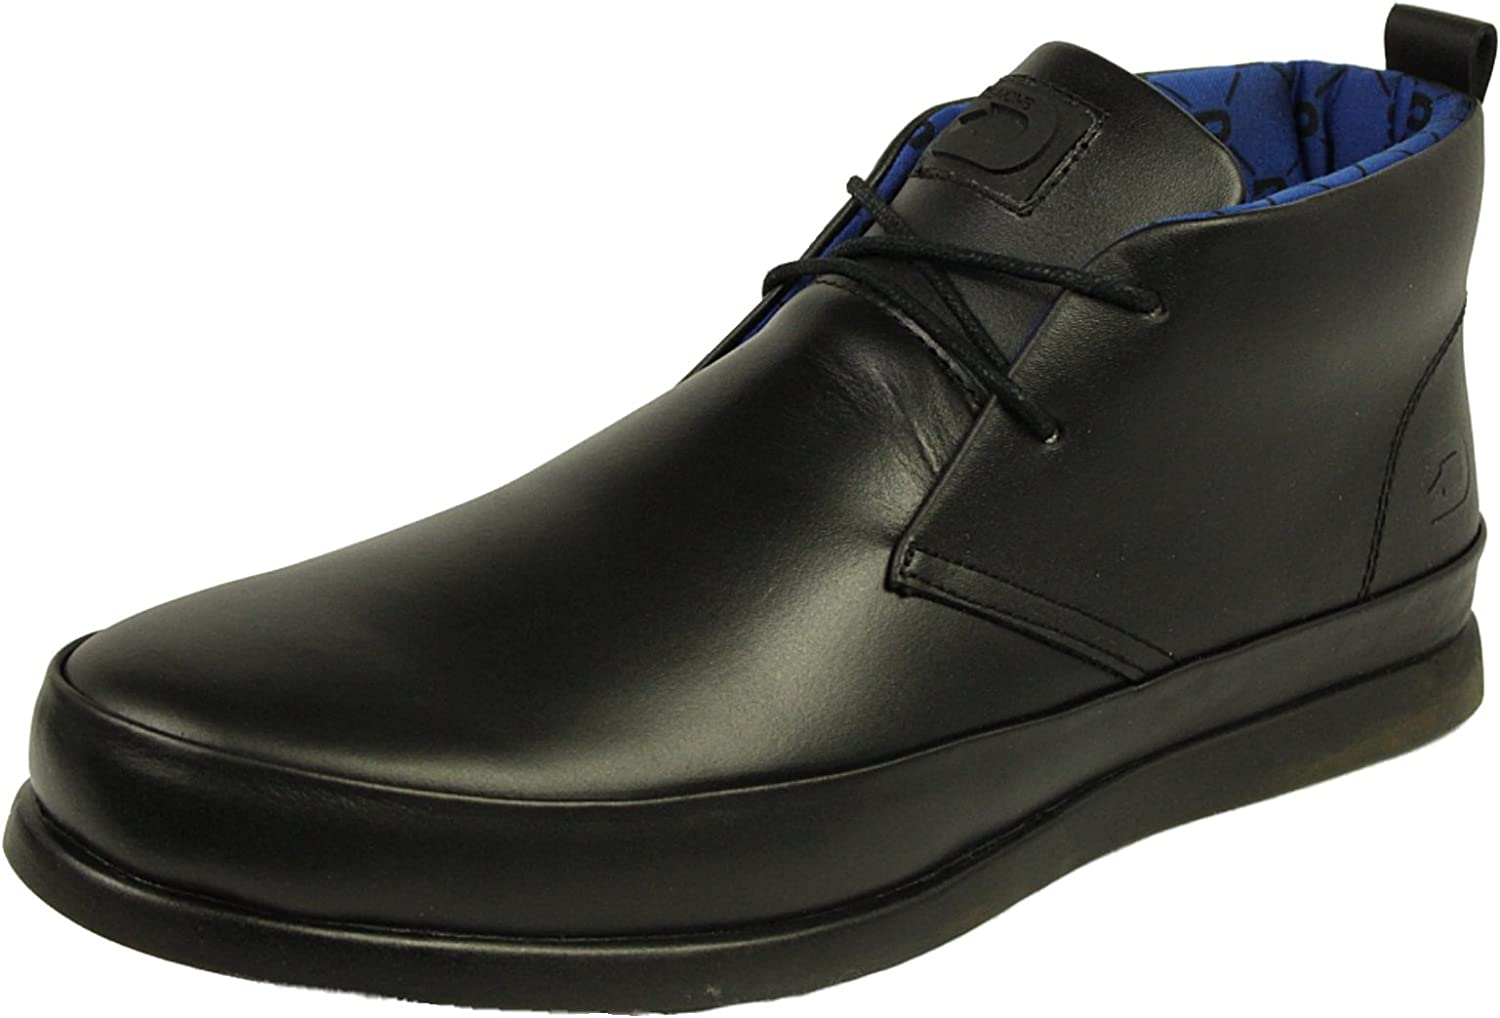 Nicholas Deakins Mens Leather shoes Rufus Black Designer Smart Formal Boots